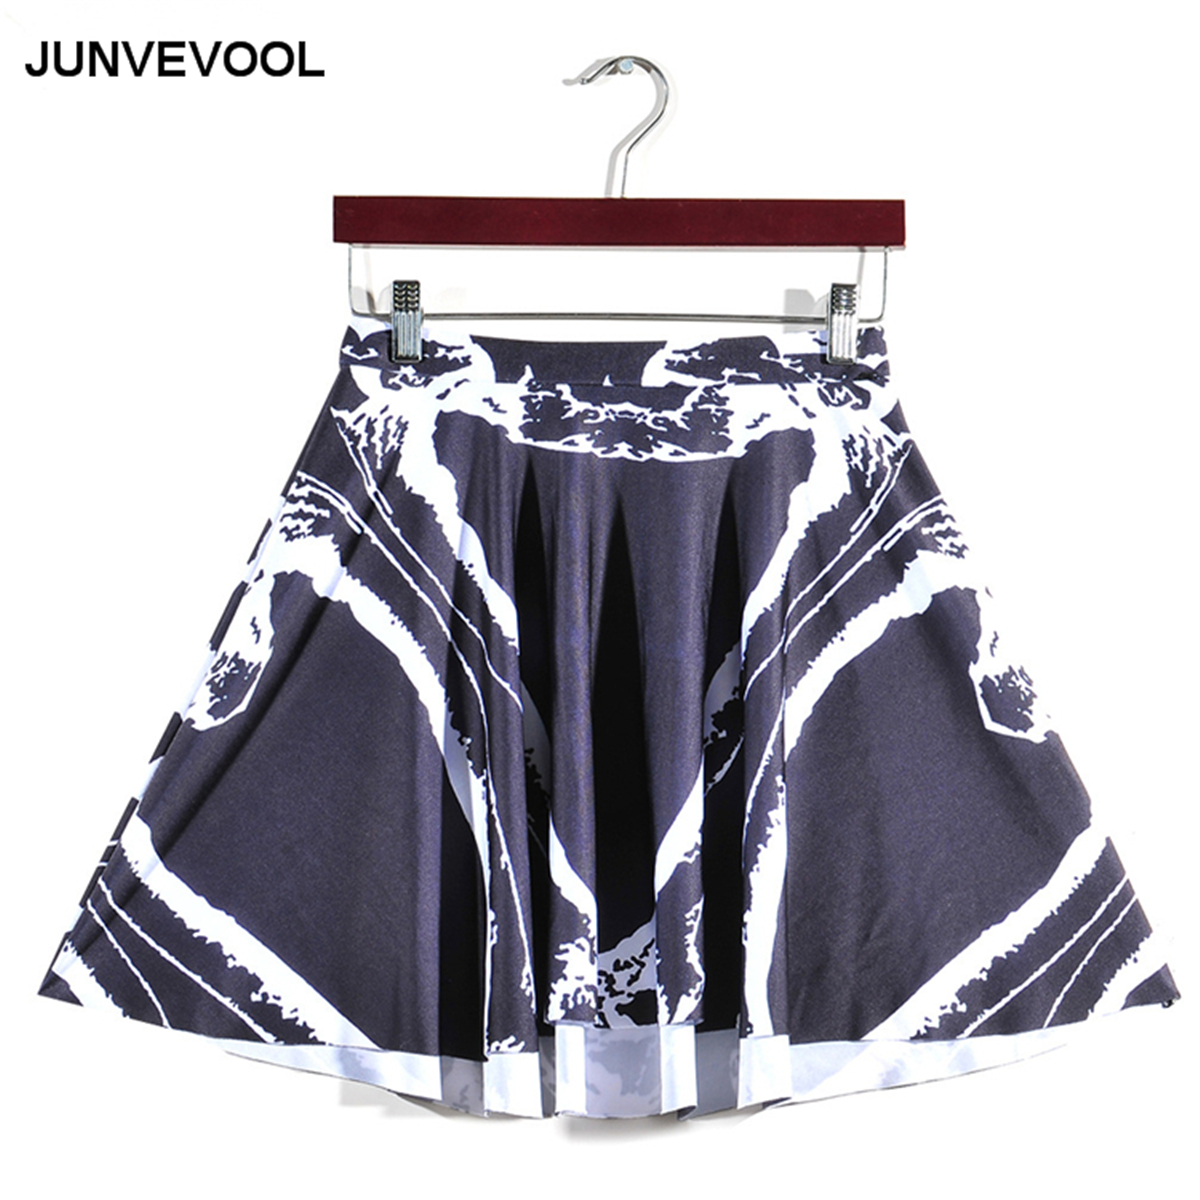 Skirt Women 3D Printed New Styles Summer Black White Patchwork Beach Mini Skirts Hot Sale Types Vogue Party Club Styles Clothing